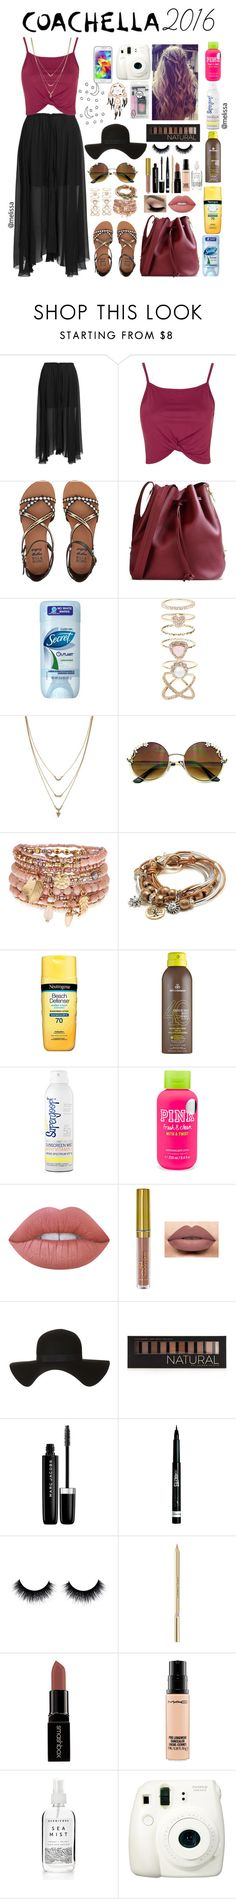 """""""Coachella Inspired Outfit!"""" by mely-carrasco ❤ liked on Polyvore featuring Étoile Isabel Marant, Topshop, Billabong, Sophie Hulme, Accessorize, Jessica Simpson, Lizzy James, Neutrogena, MDSolarSciences and Supergoop!"""